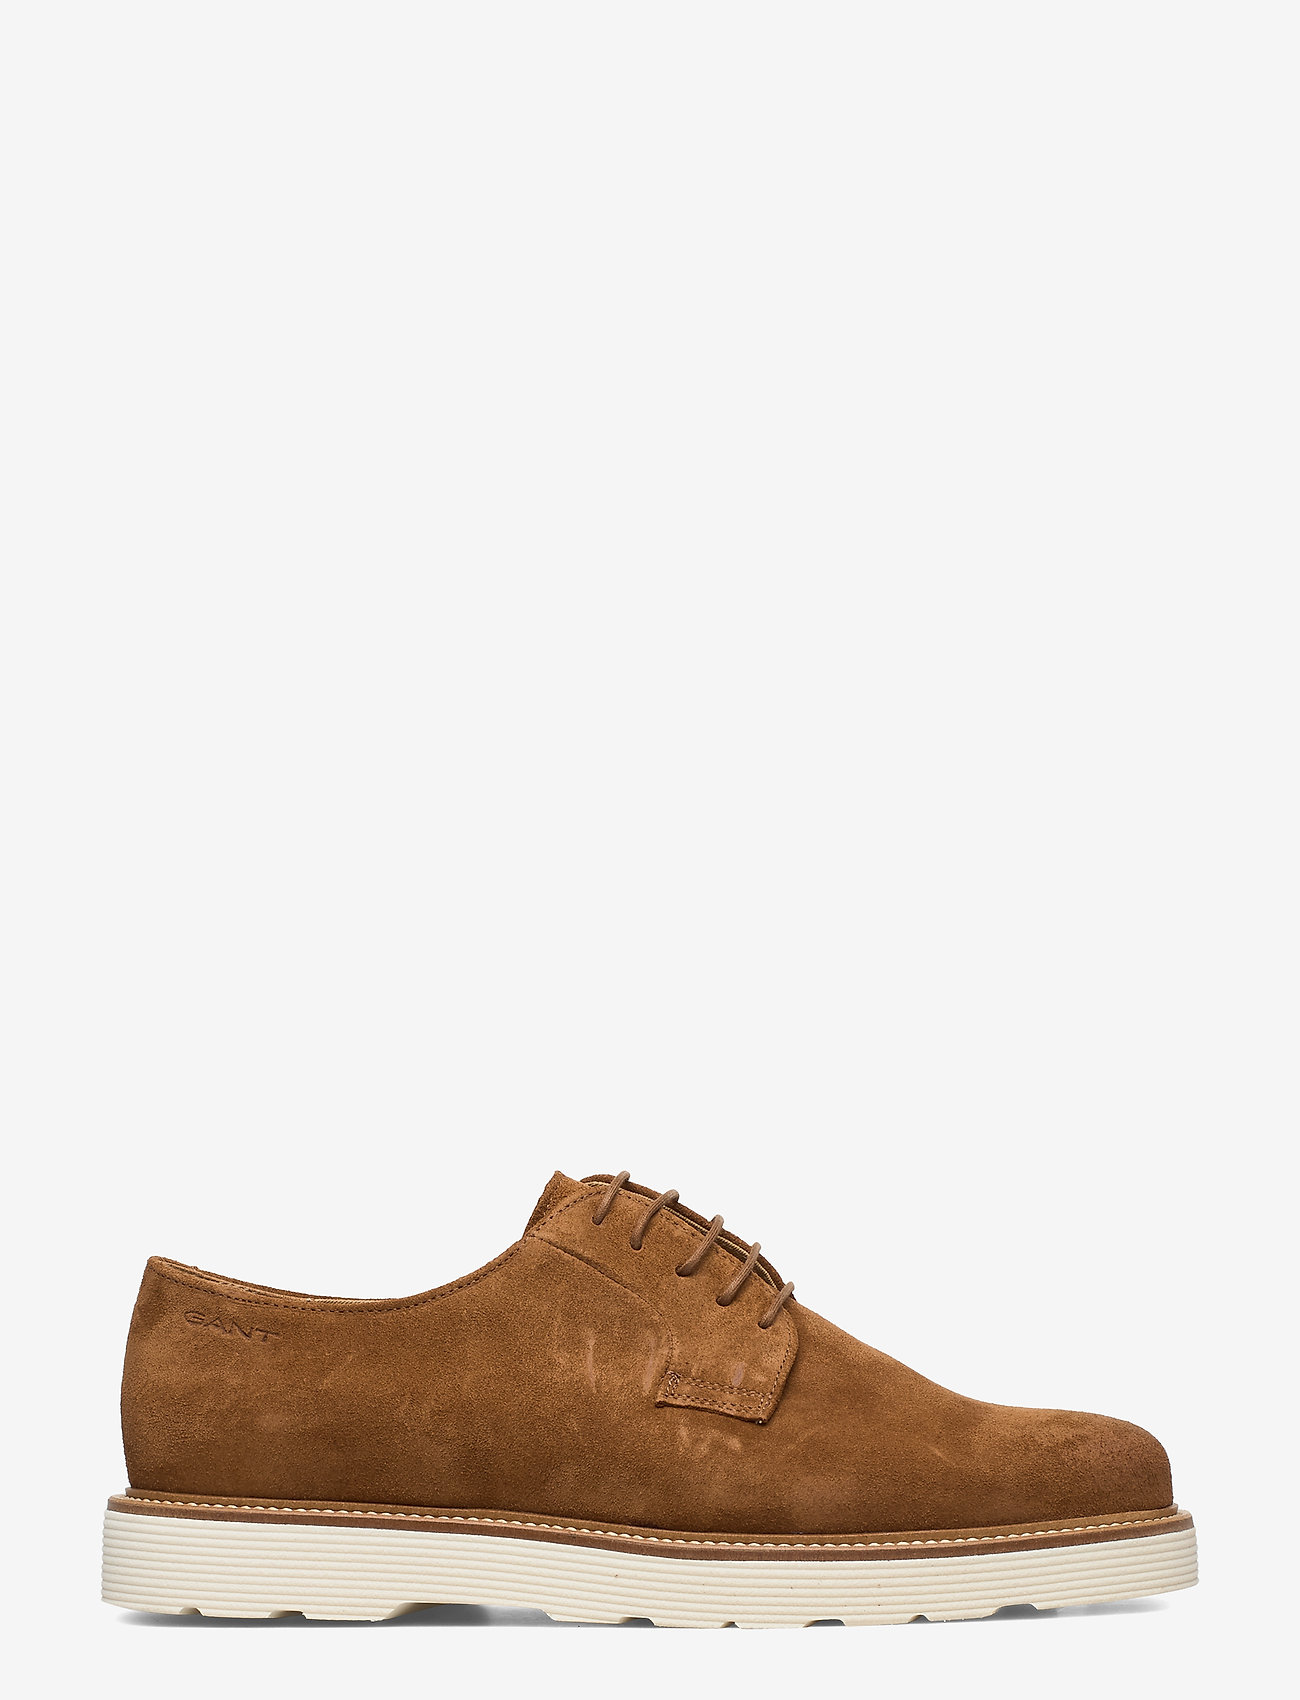 GANT - Prepburg Low lace shoes - chaussures lacées - cognac - 1